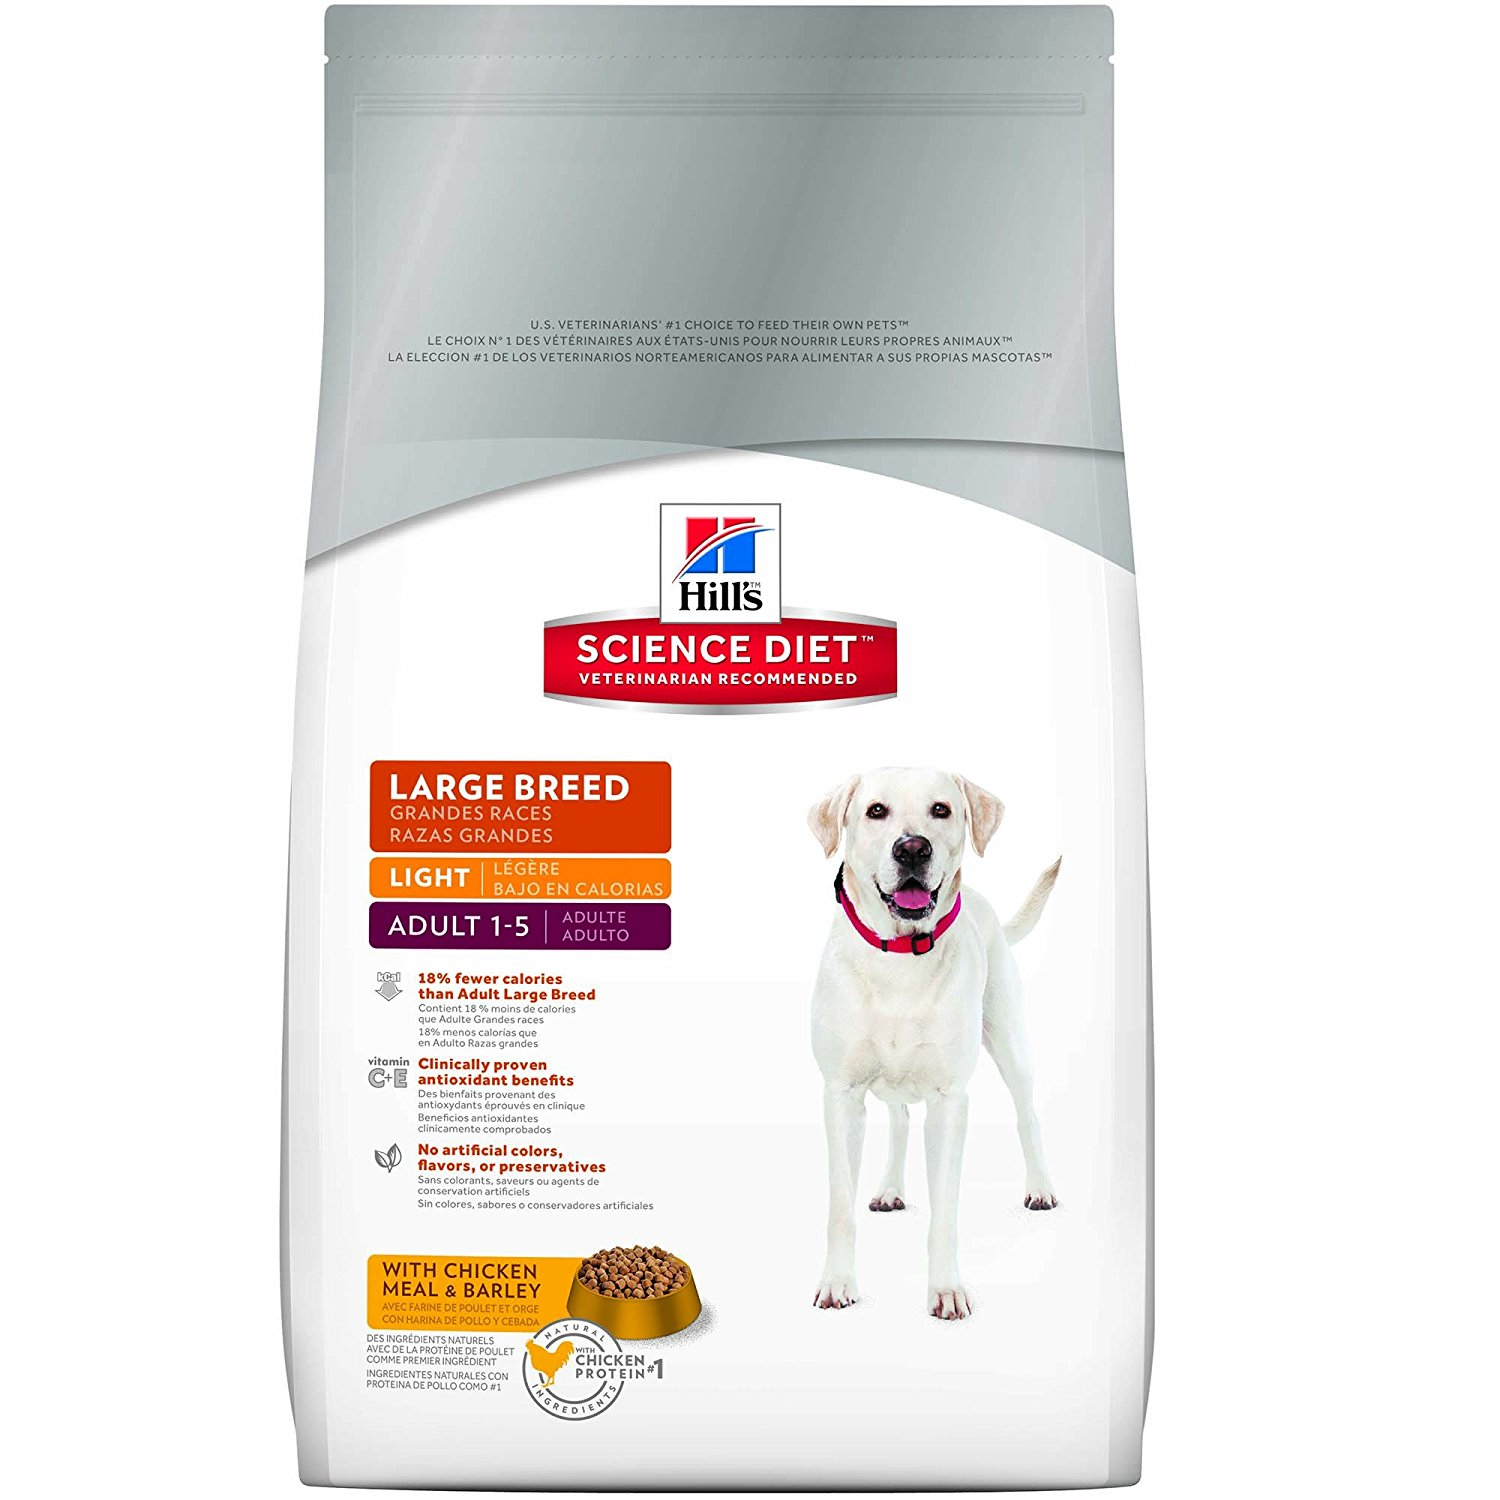 Hill's Science Diet Adult Light Dog Food, Large Breed Chicken Meal & Barley for Weight Management, Dry Dog Food